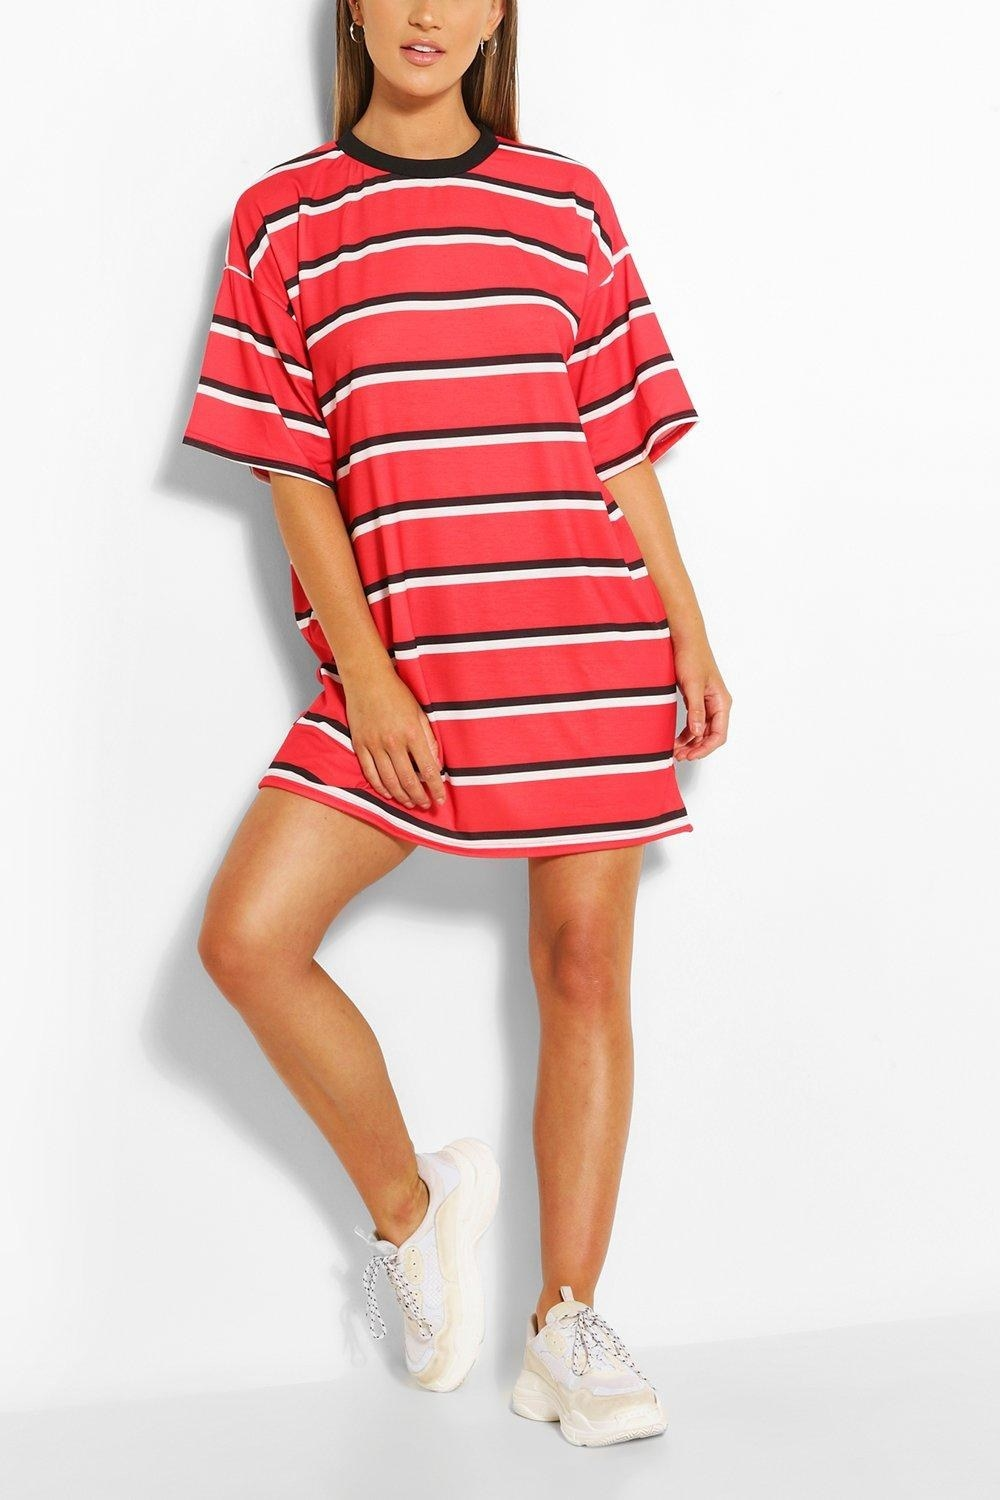 model in red, black, and white oversized tee dress